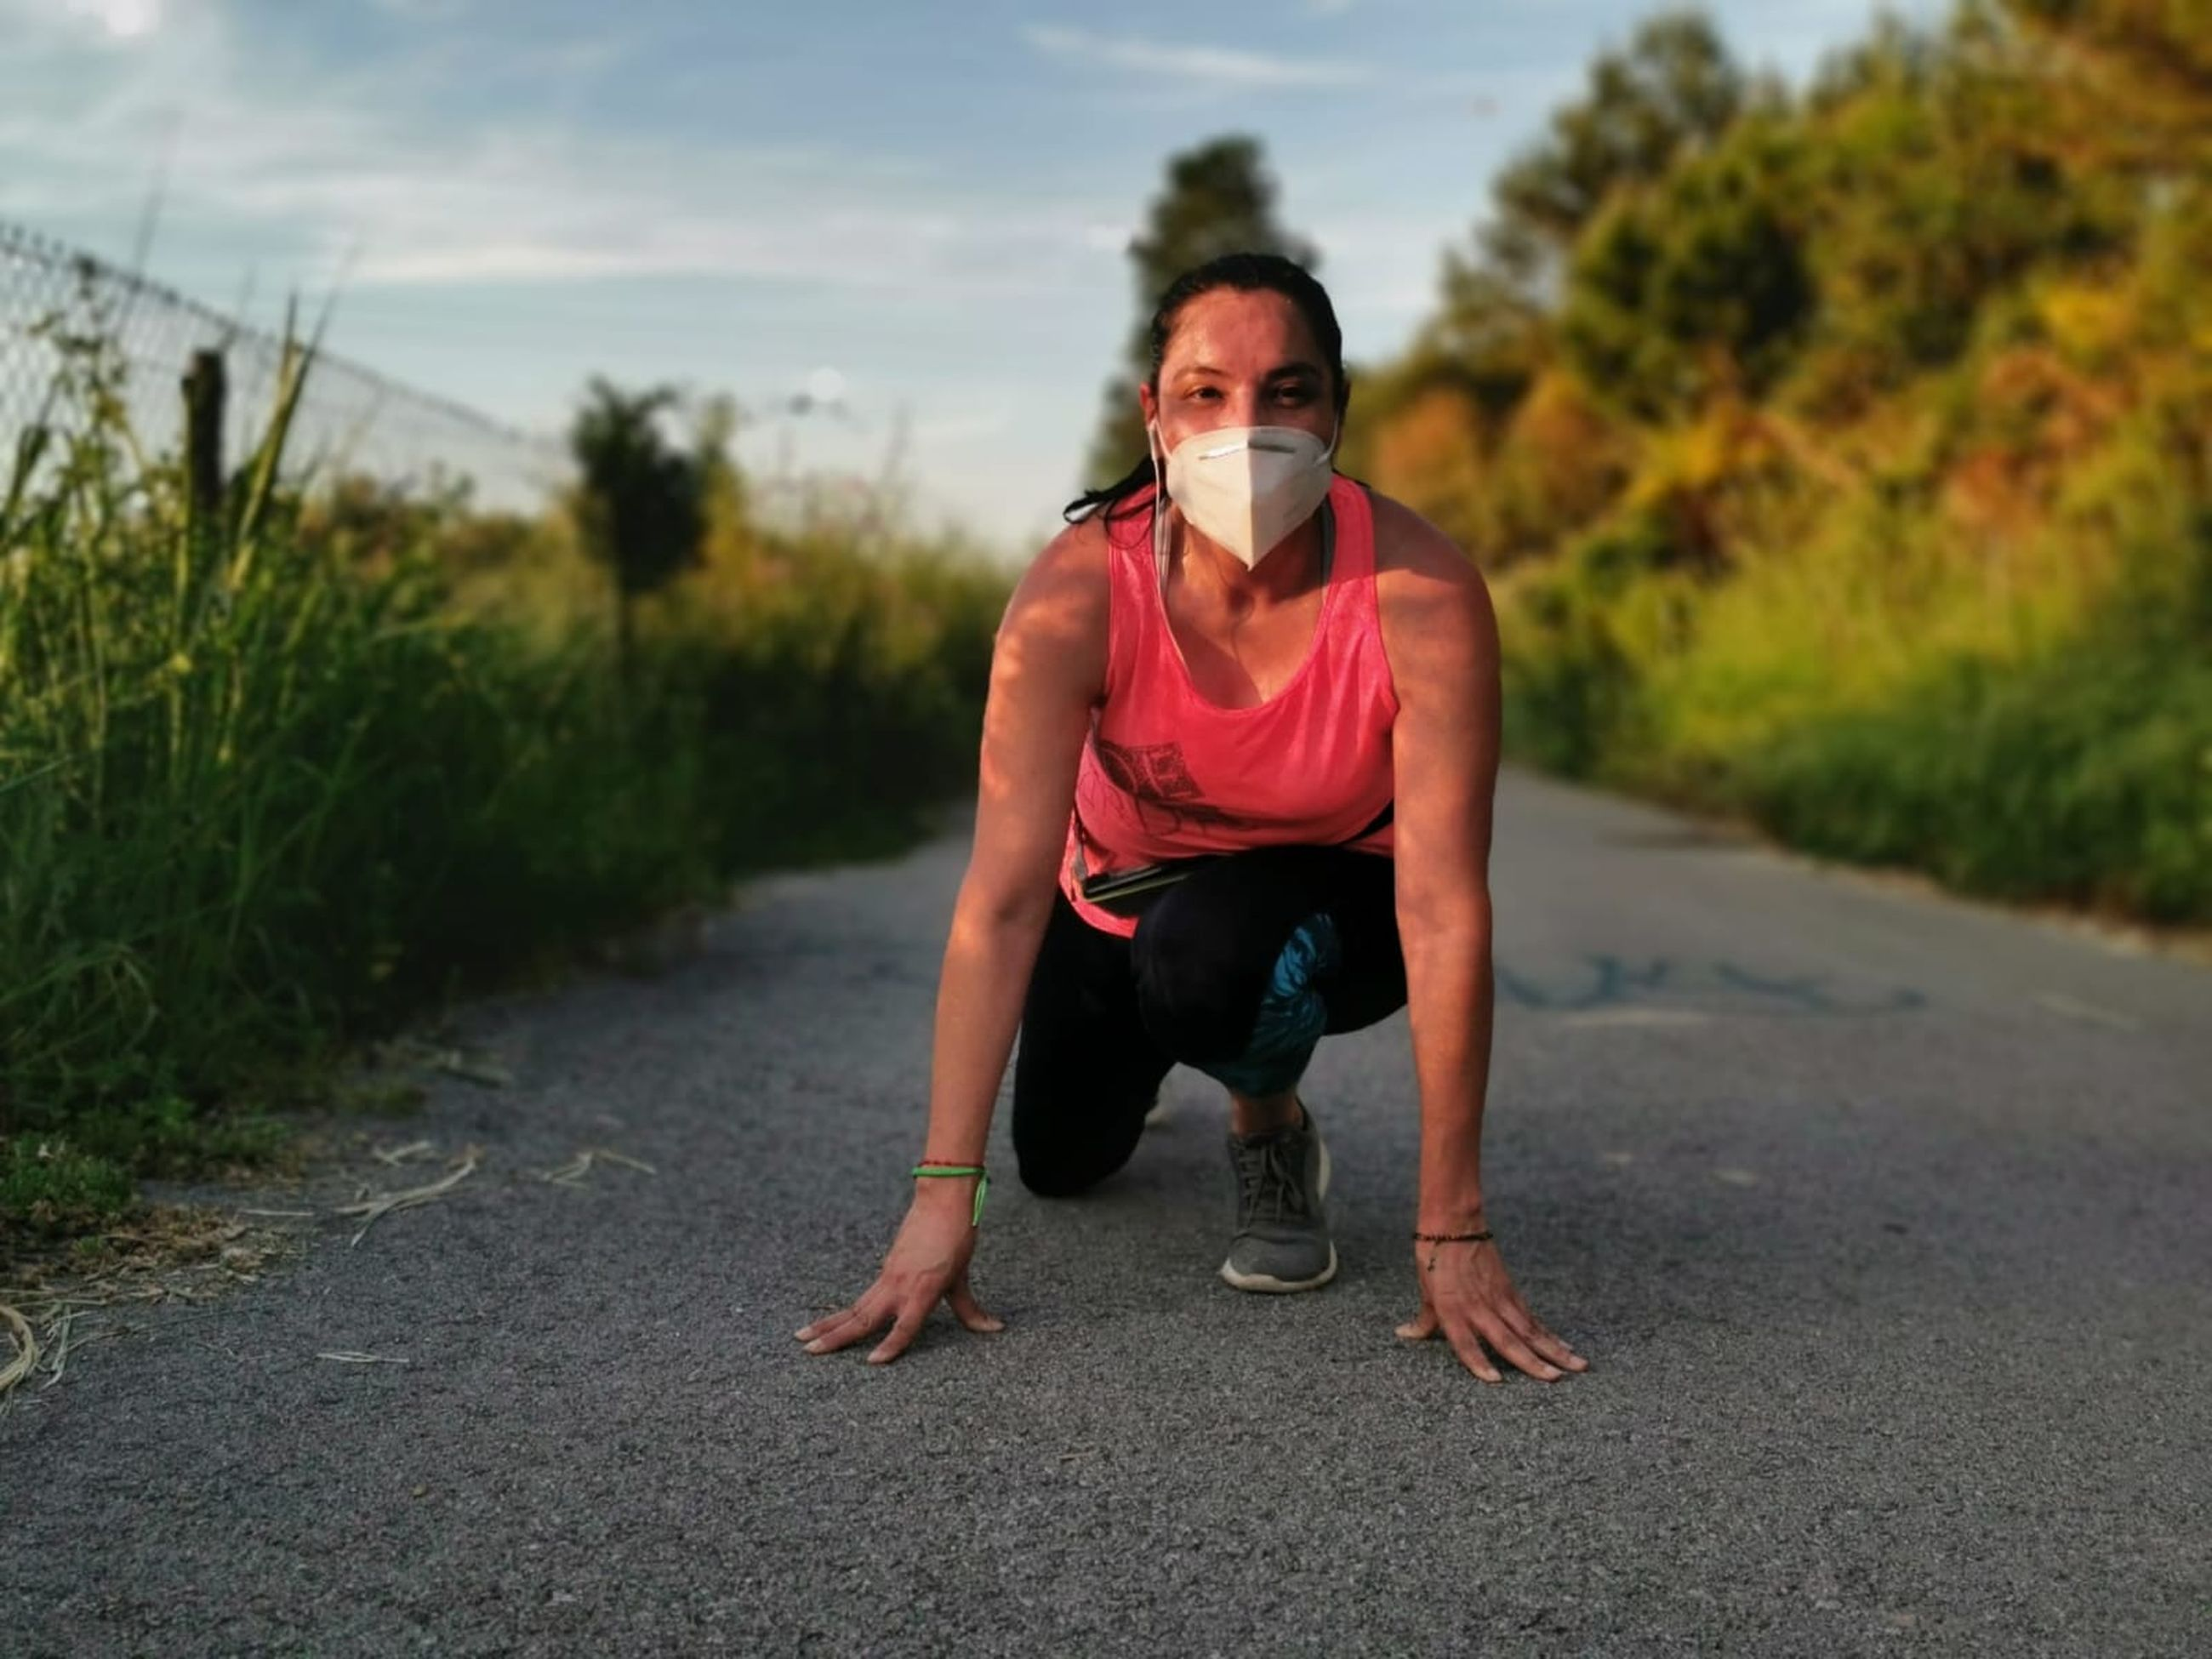 exercising, adult, one person, sports, lifestyles, sports clothing, sports training, road, full length, clothing, nature, front view, athlete, wellbeing, leisure activity, vitality, muscular build, jogging, activity, day, sky, determination, person, running, outdoors, strength, women, portrait, endurance, young adult, city, athleticism, transportation, plant, relaxation, recreation, motivation